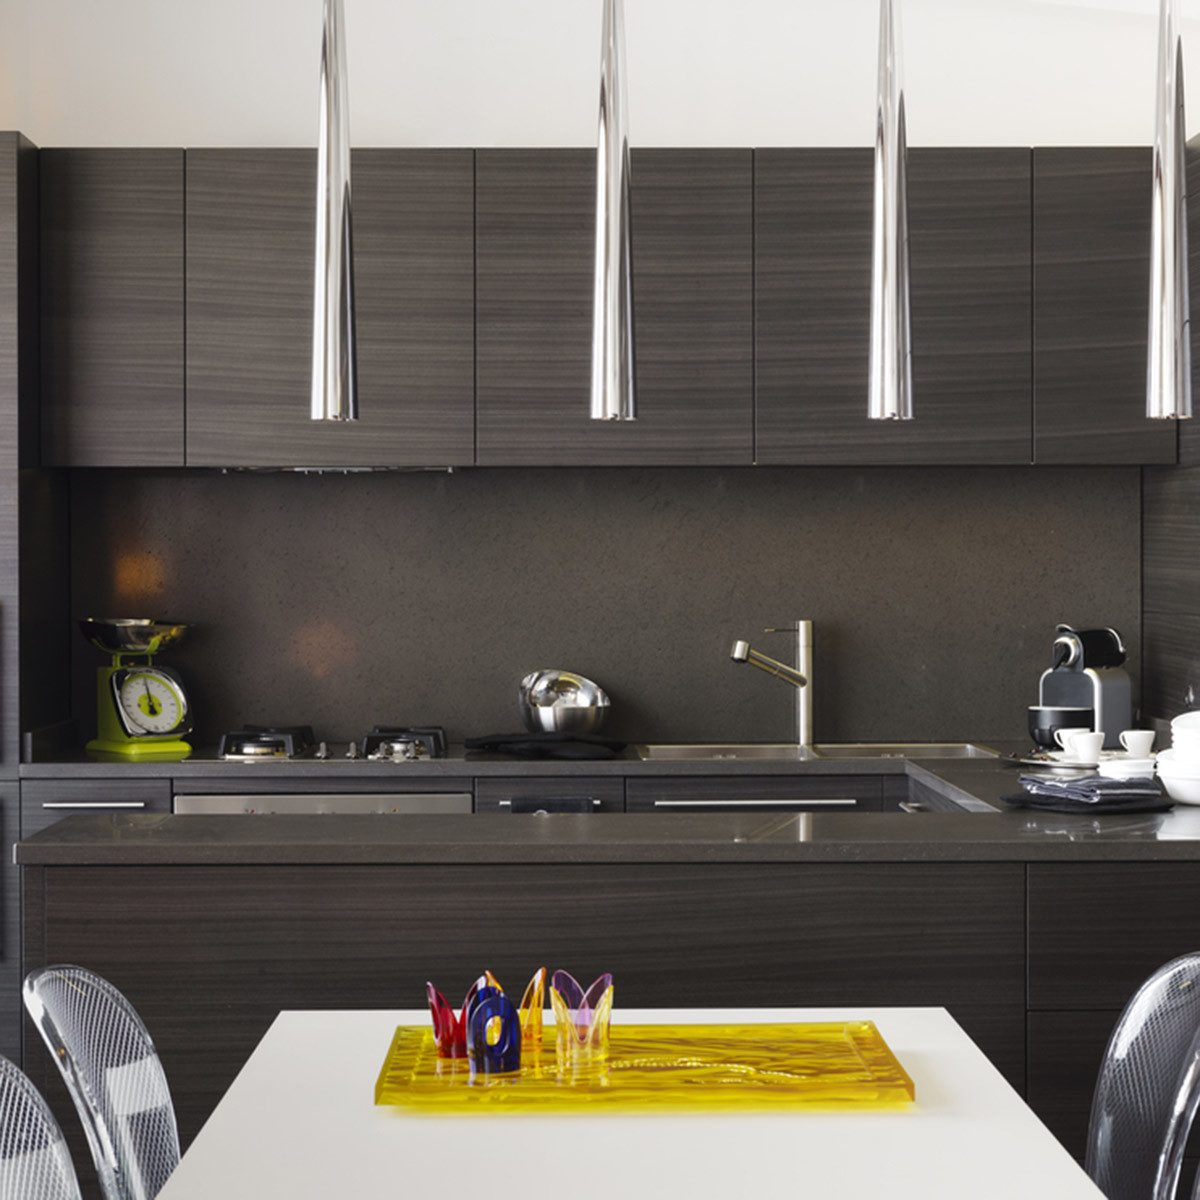 Kitchen Cabinet Alternatives: 15 Kitchen Color Schemes For Your Inner Gourmet